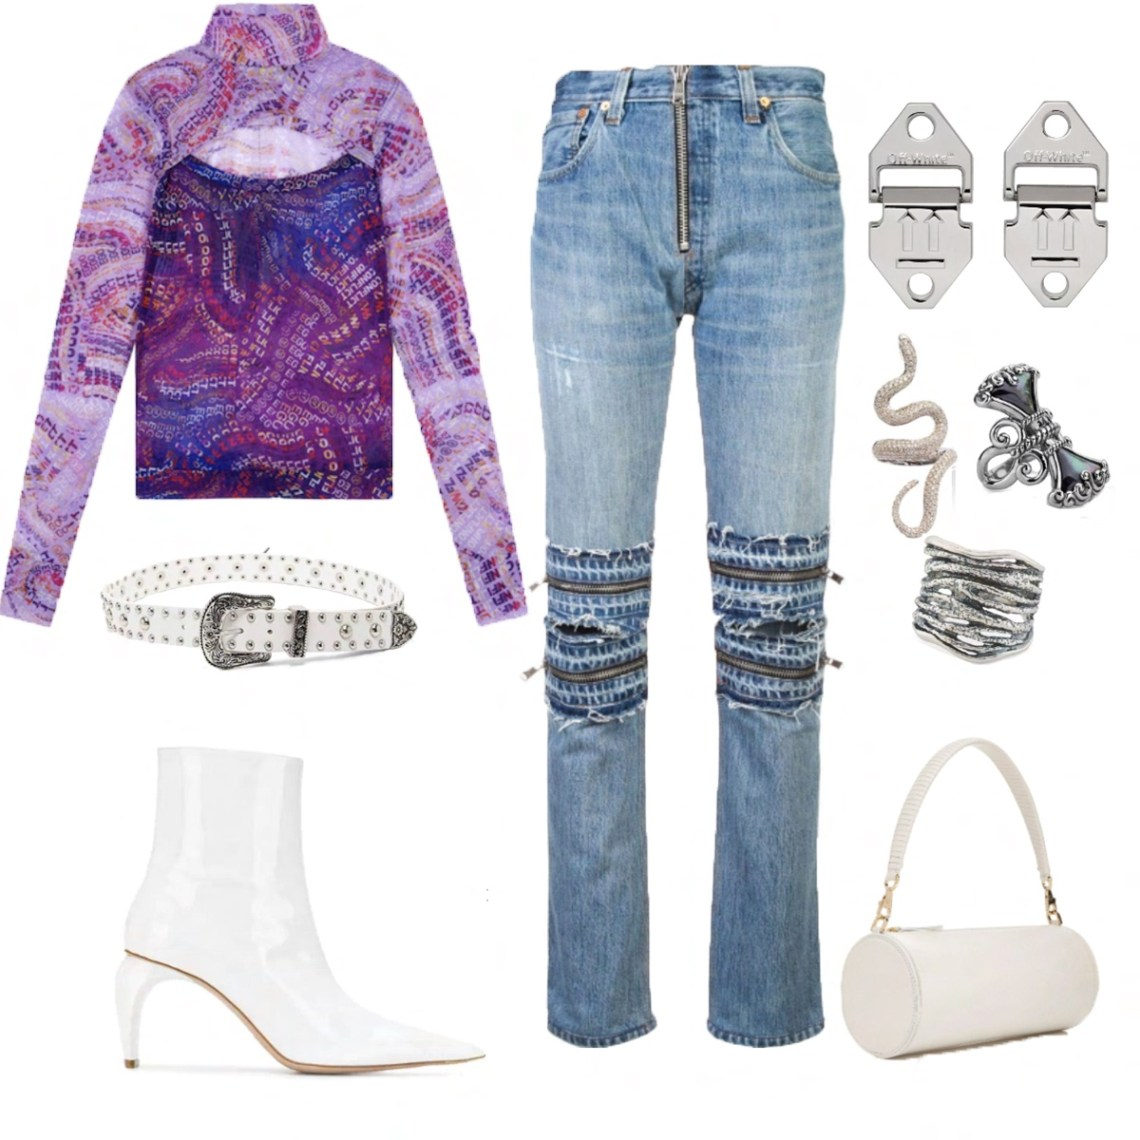 Ada Cut-out Mesh Top Styling Ideas